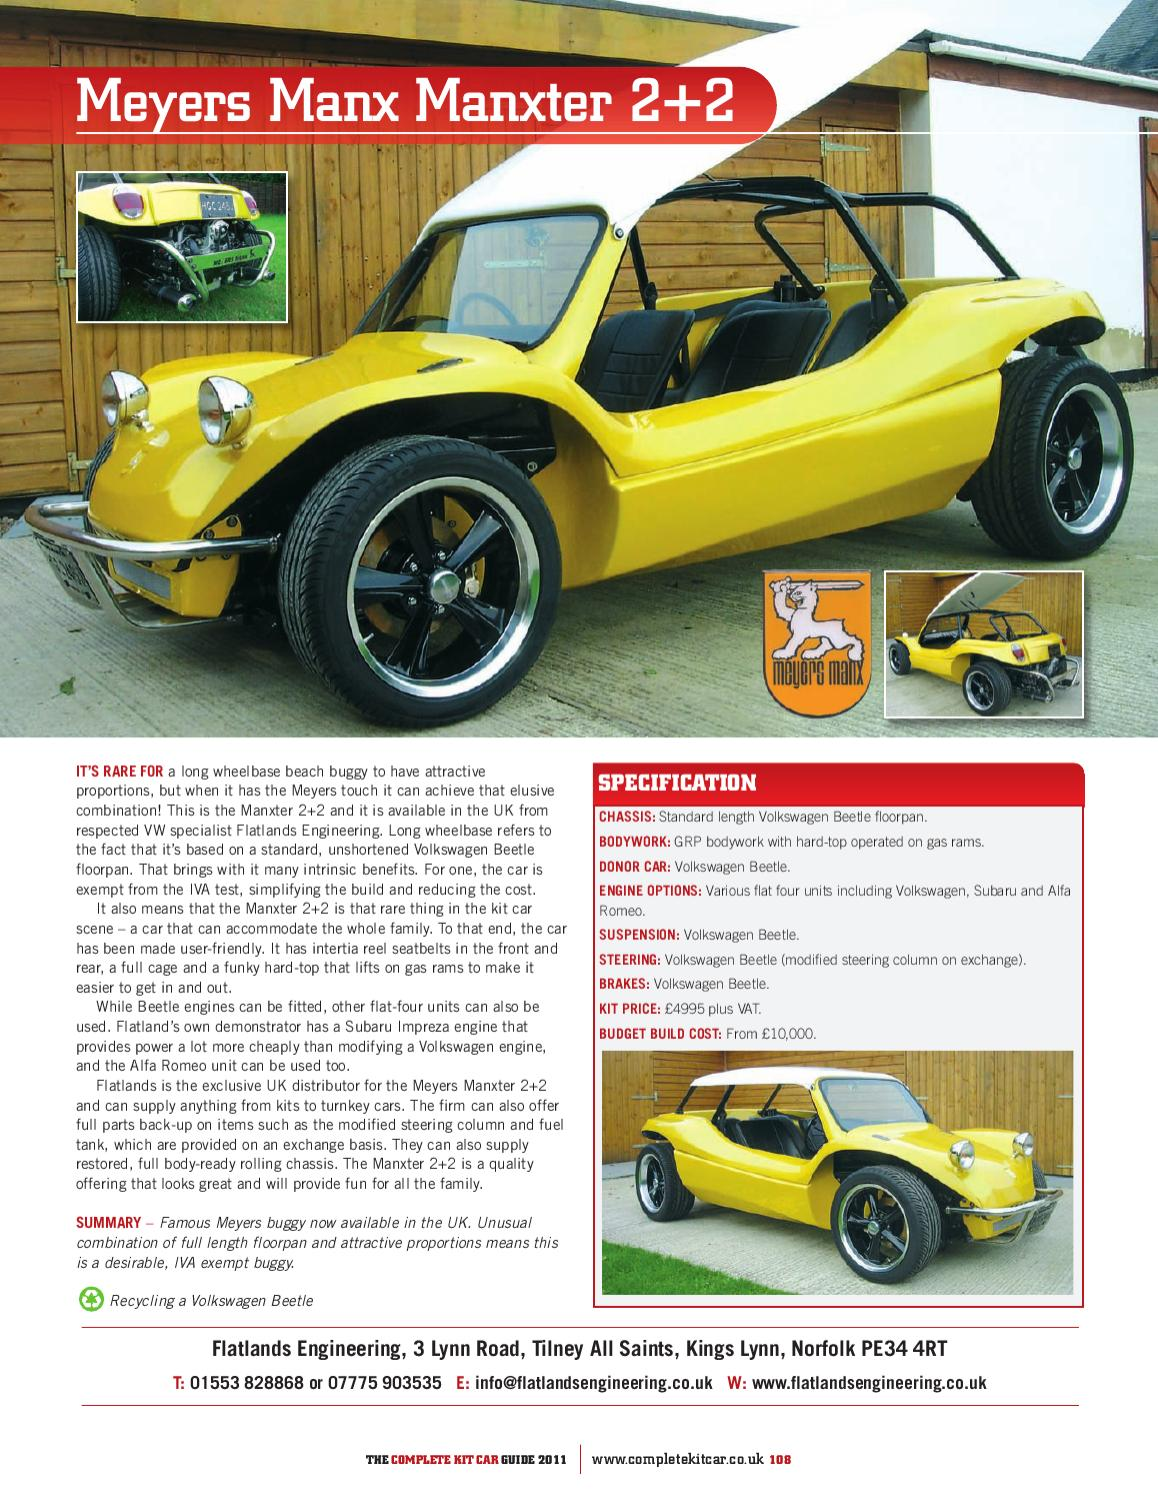 Complete Kit Car Guide 2011 by Performance Publishing Ltd